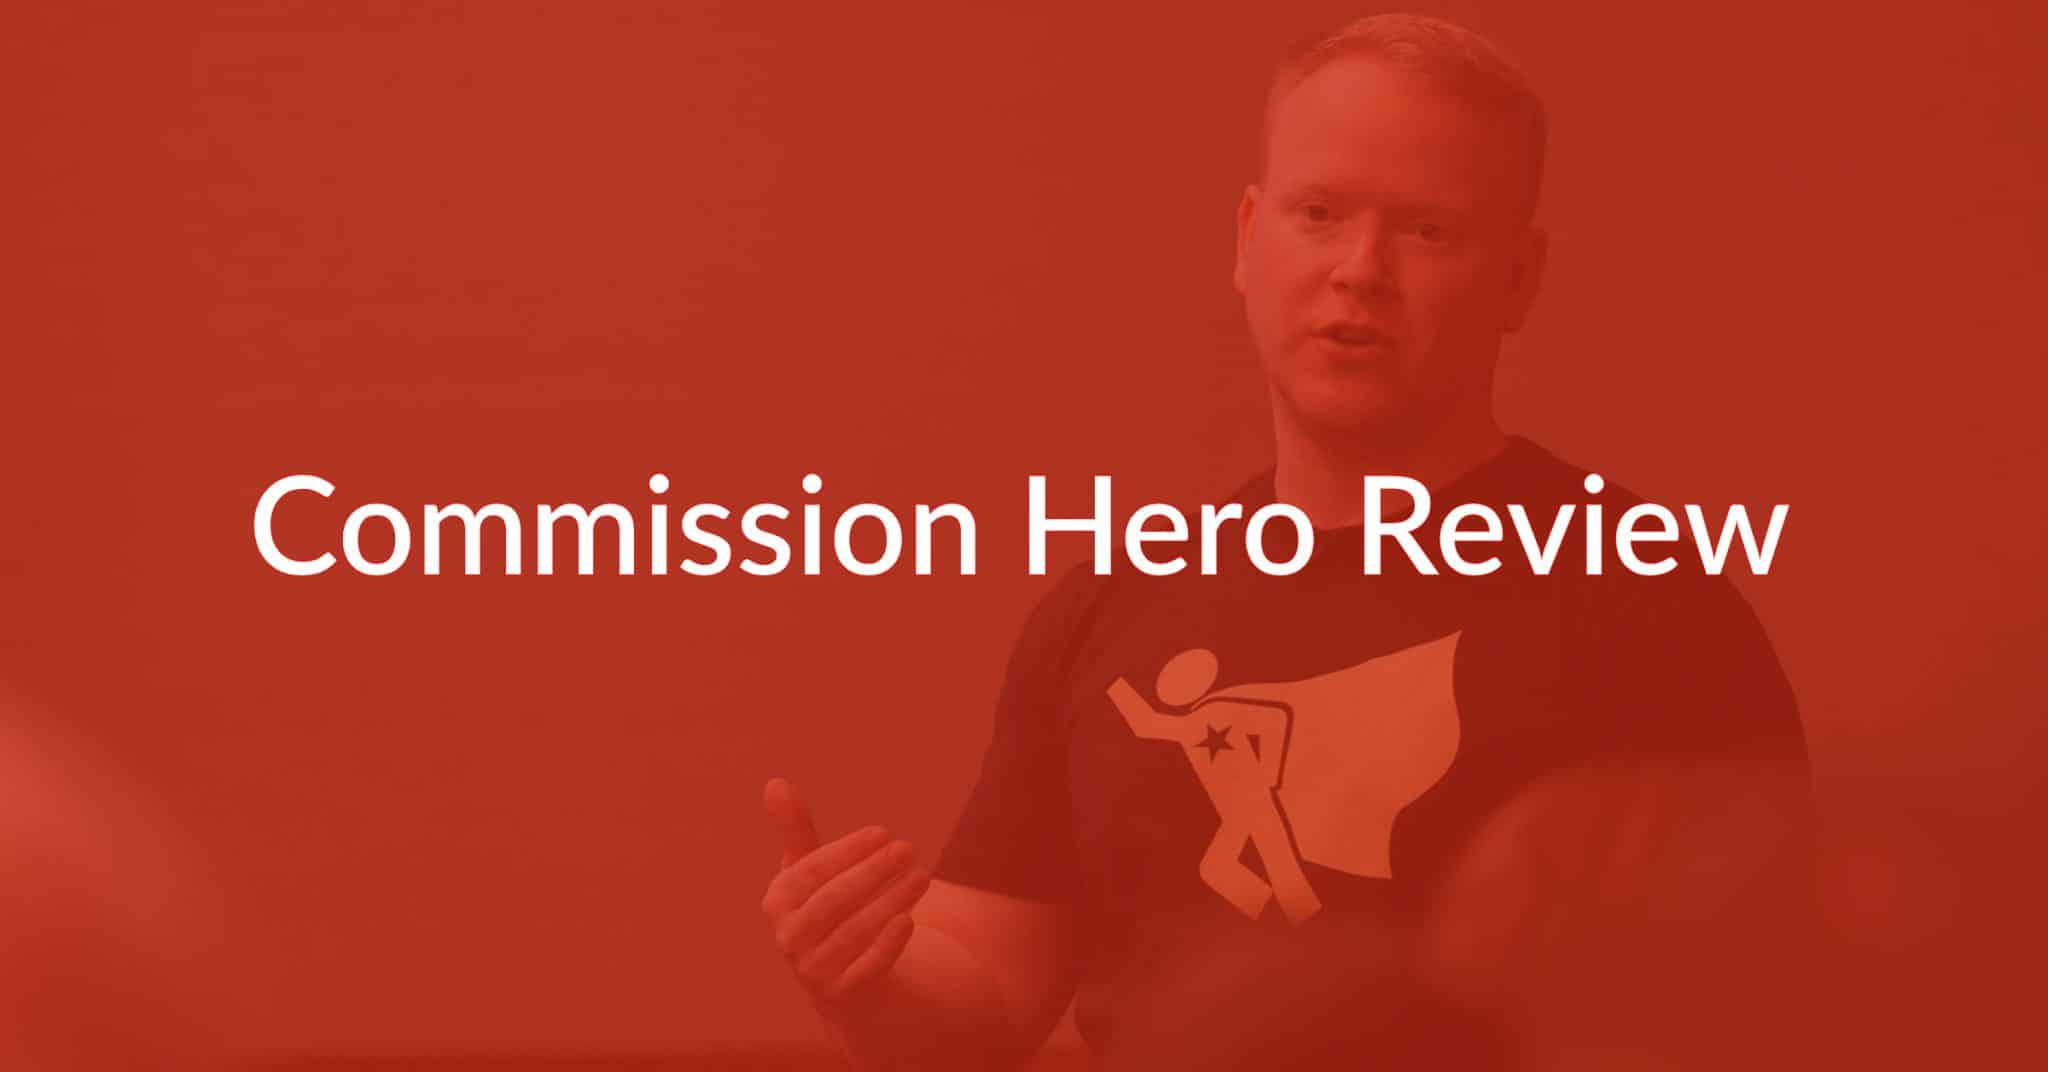 Commission Hero Review: Is Robby Blanchard's Course Legit?